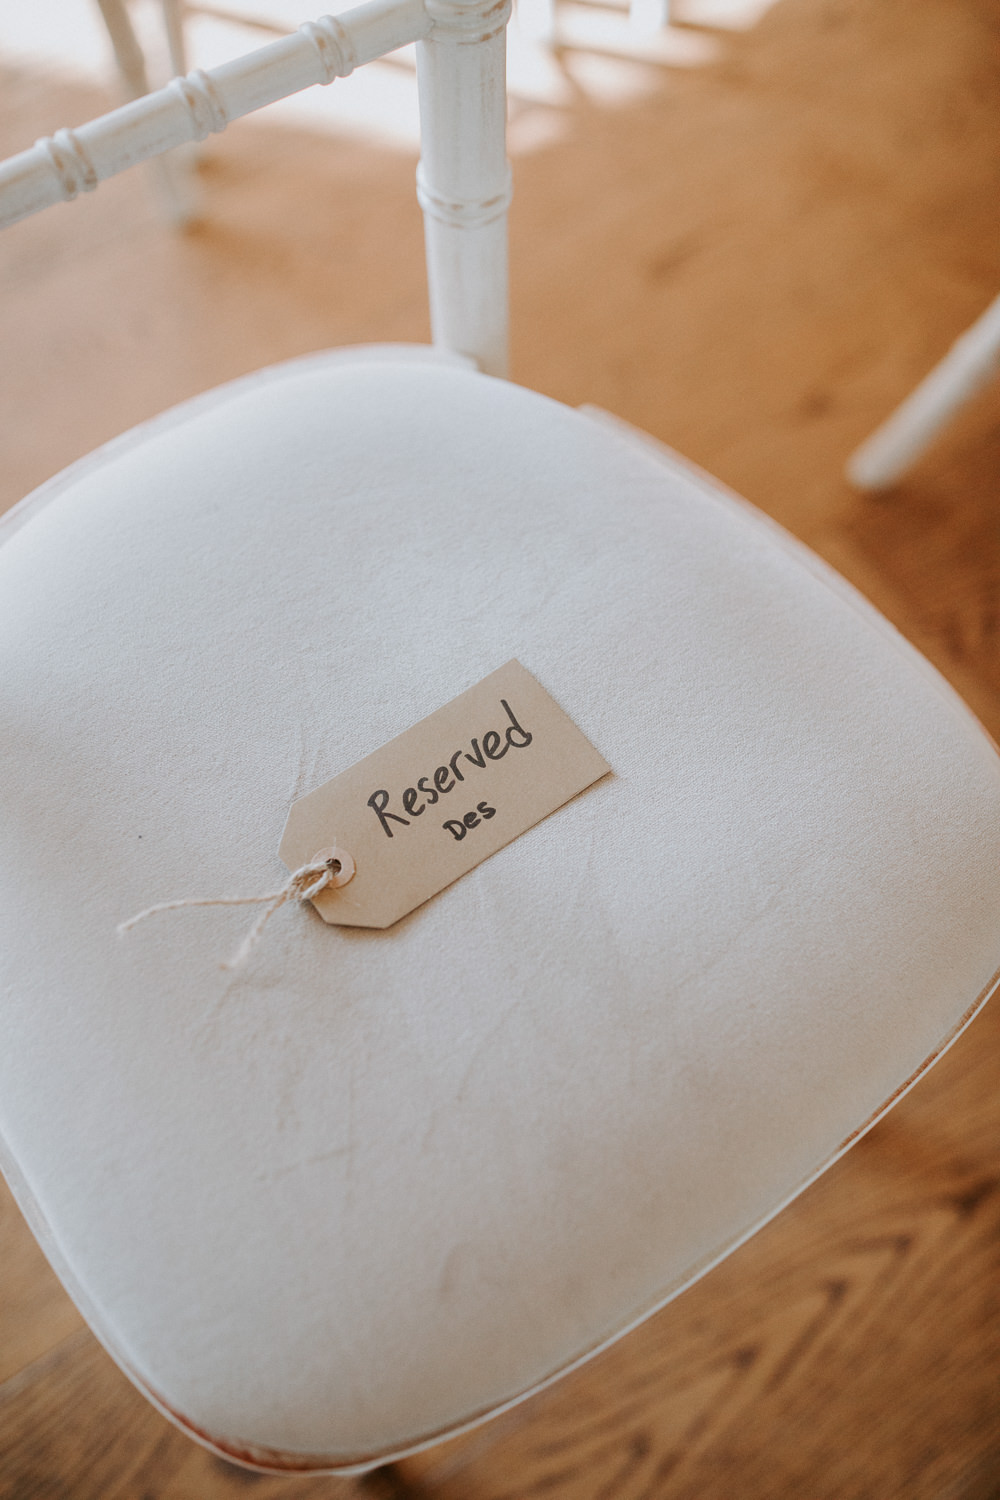 Reserved Seat Tag Luggage Ceremony Barn Upcote Wedding Siobhan Beales Photography